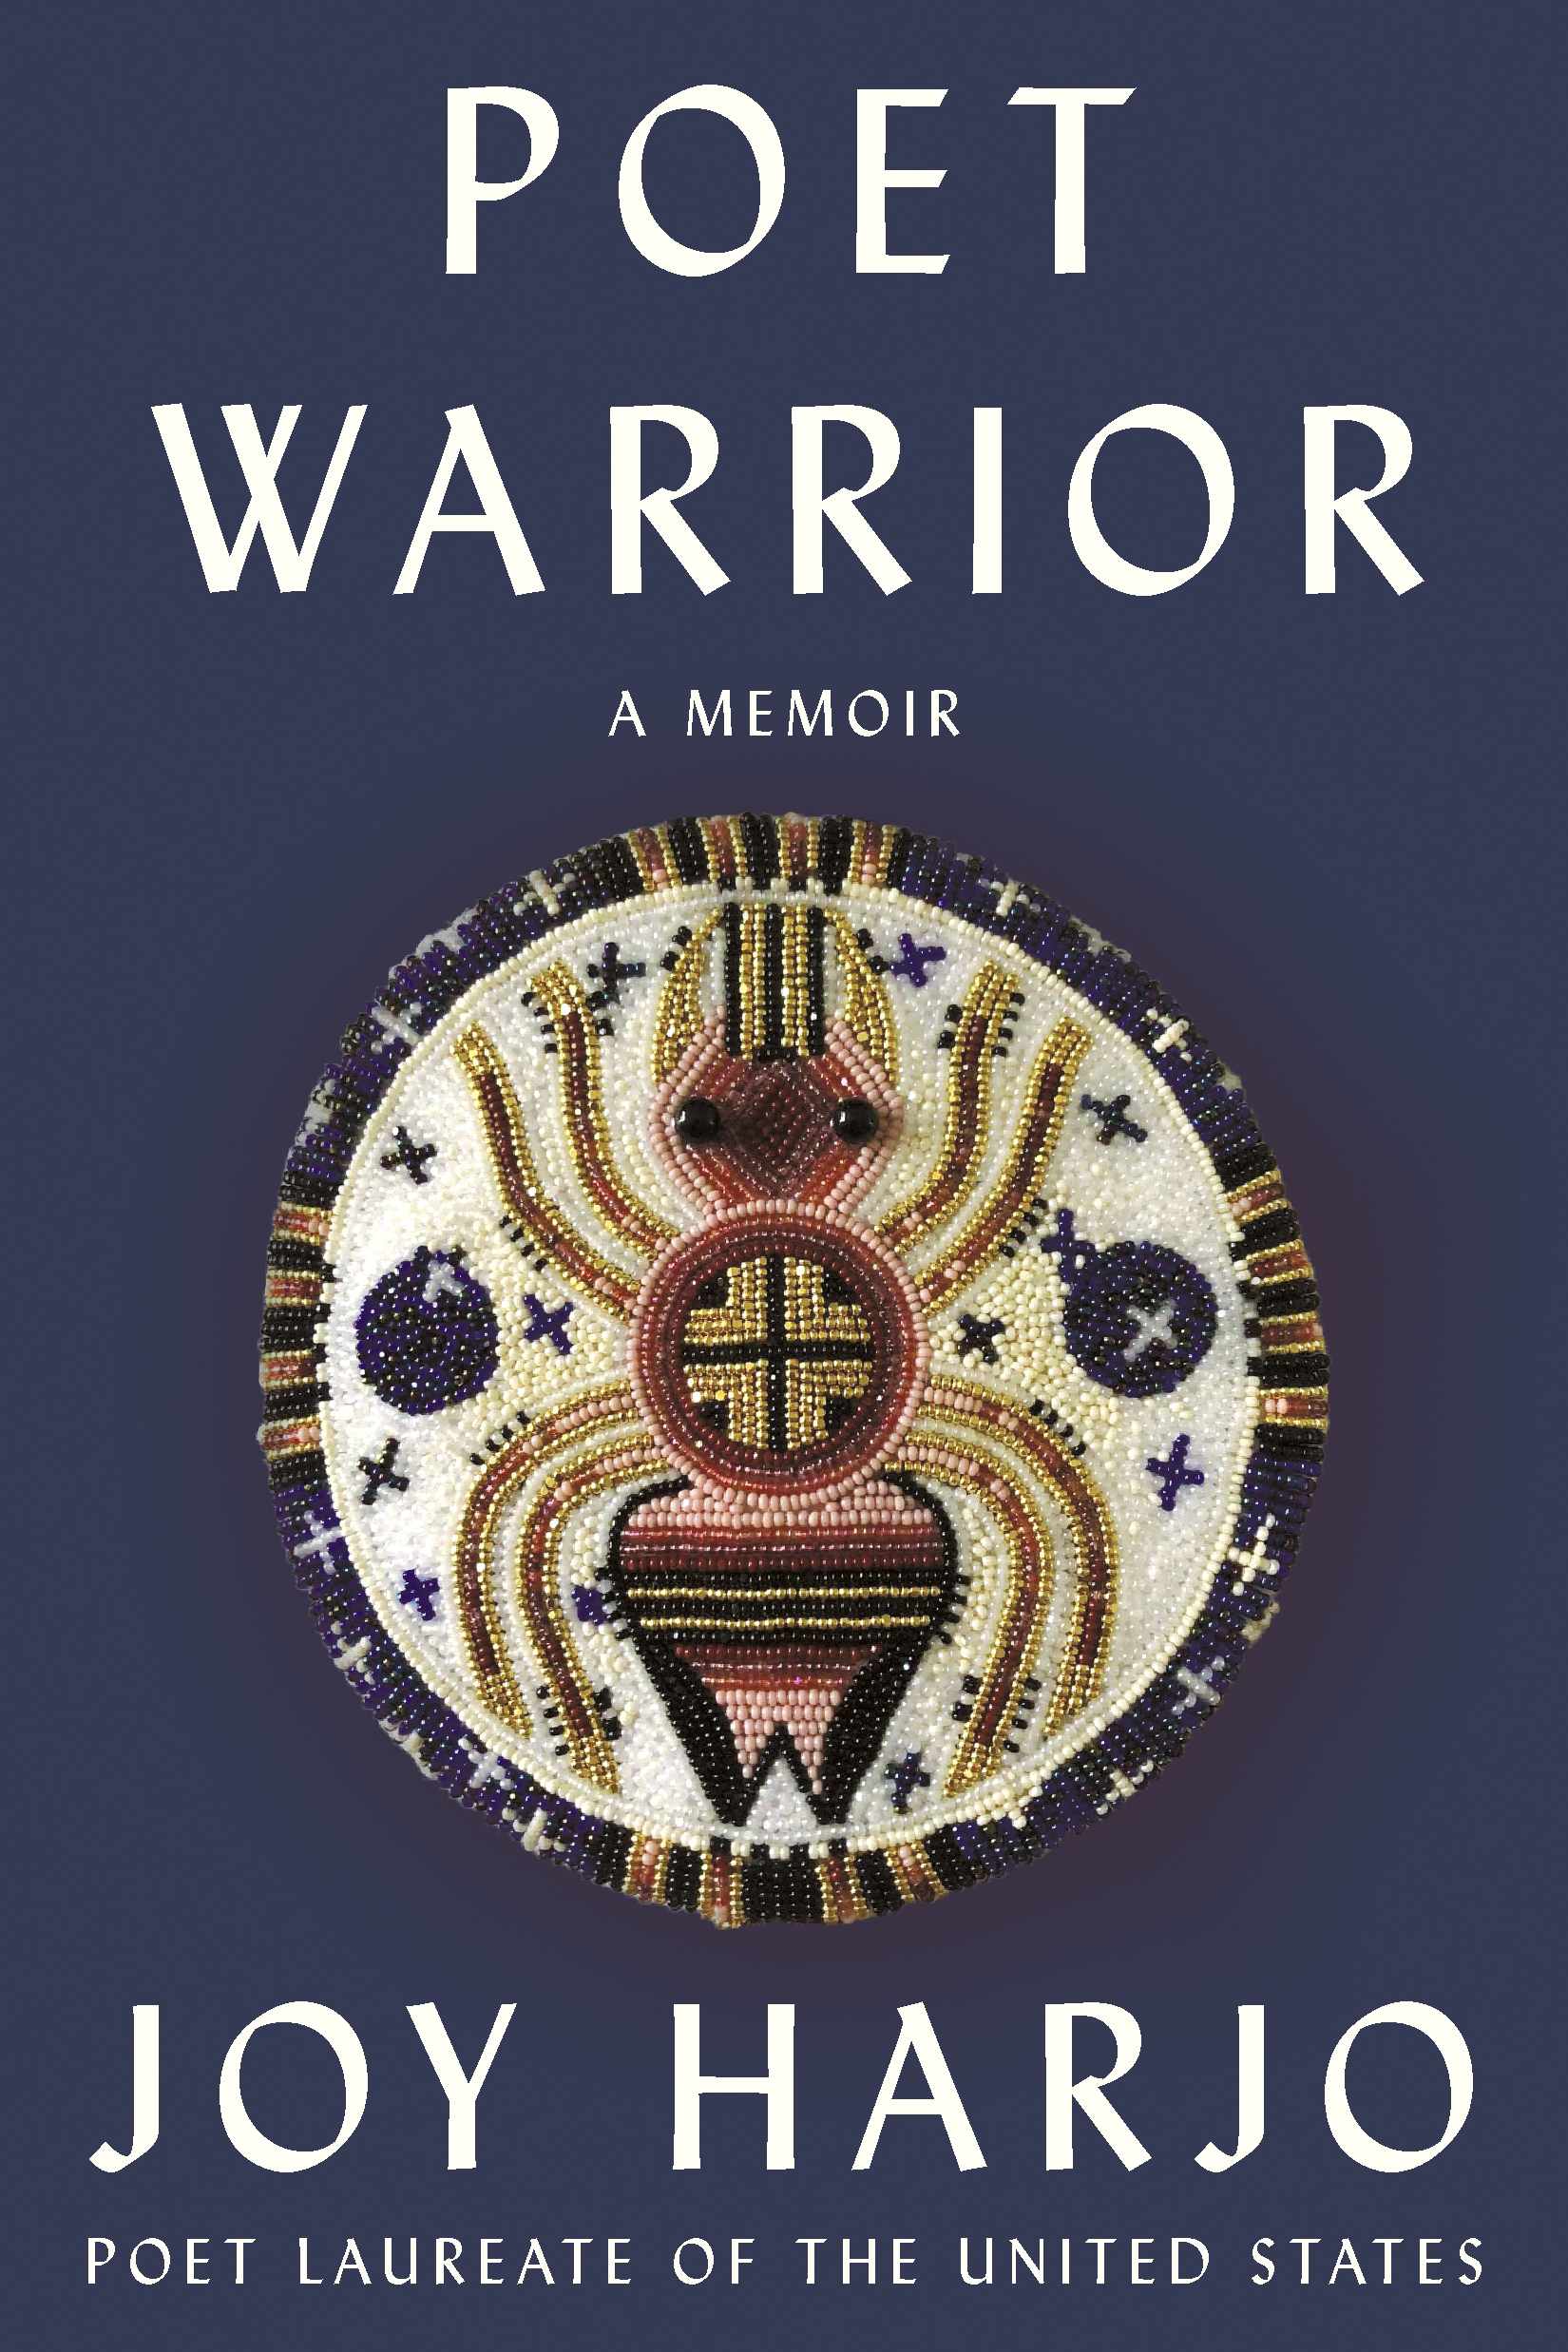 """Book Cover Image of """"Poet Warrior"""""""